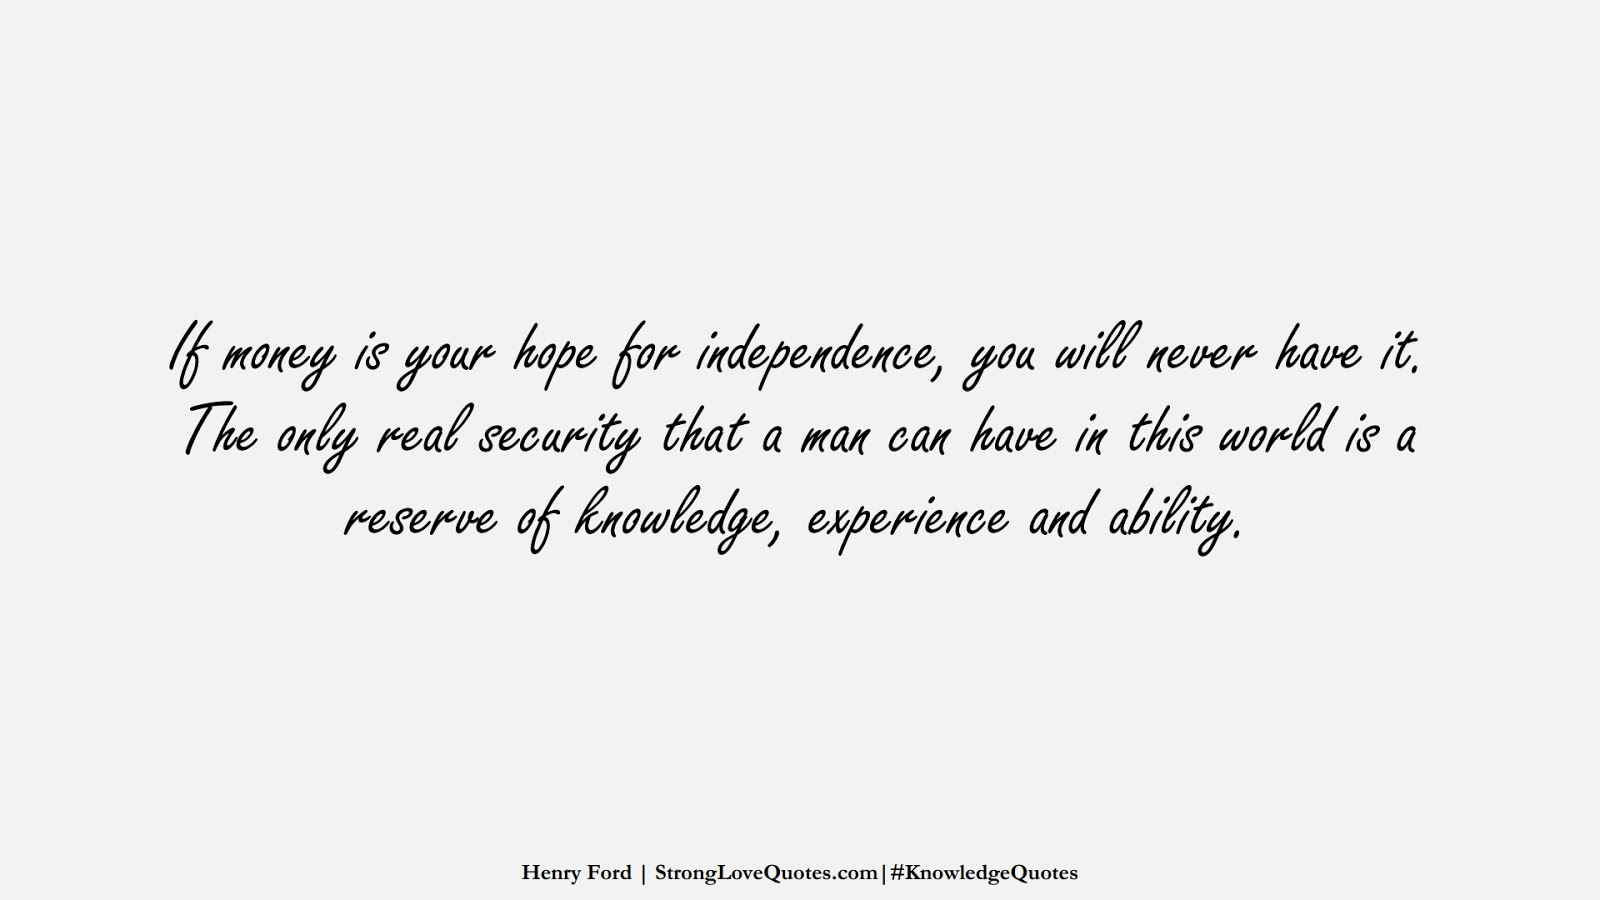 If money is your hope for independence, you will never have it. The only real security that a man can have in this world is a reserve of knowledge, experience and ability. (Henry Ford);  #KnowledgeQuotes